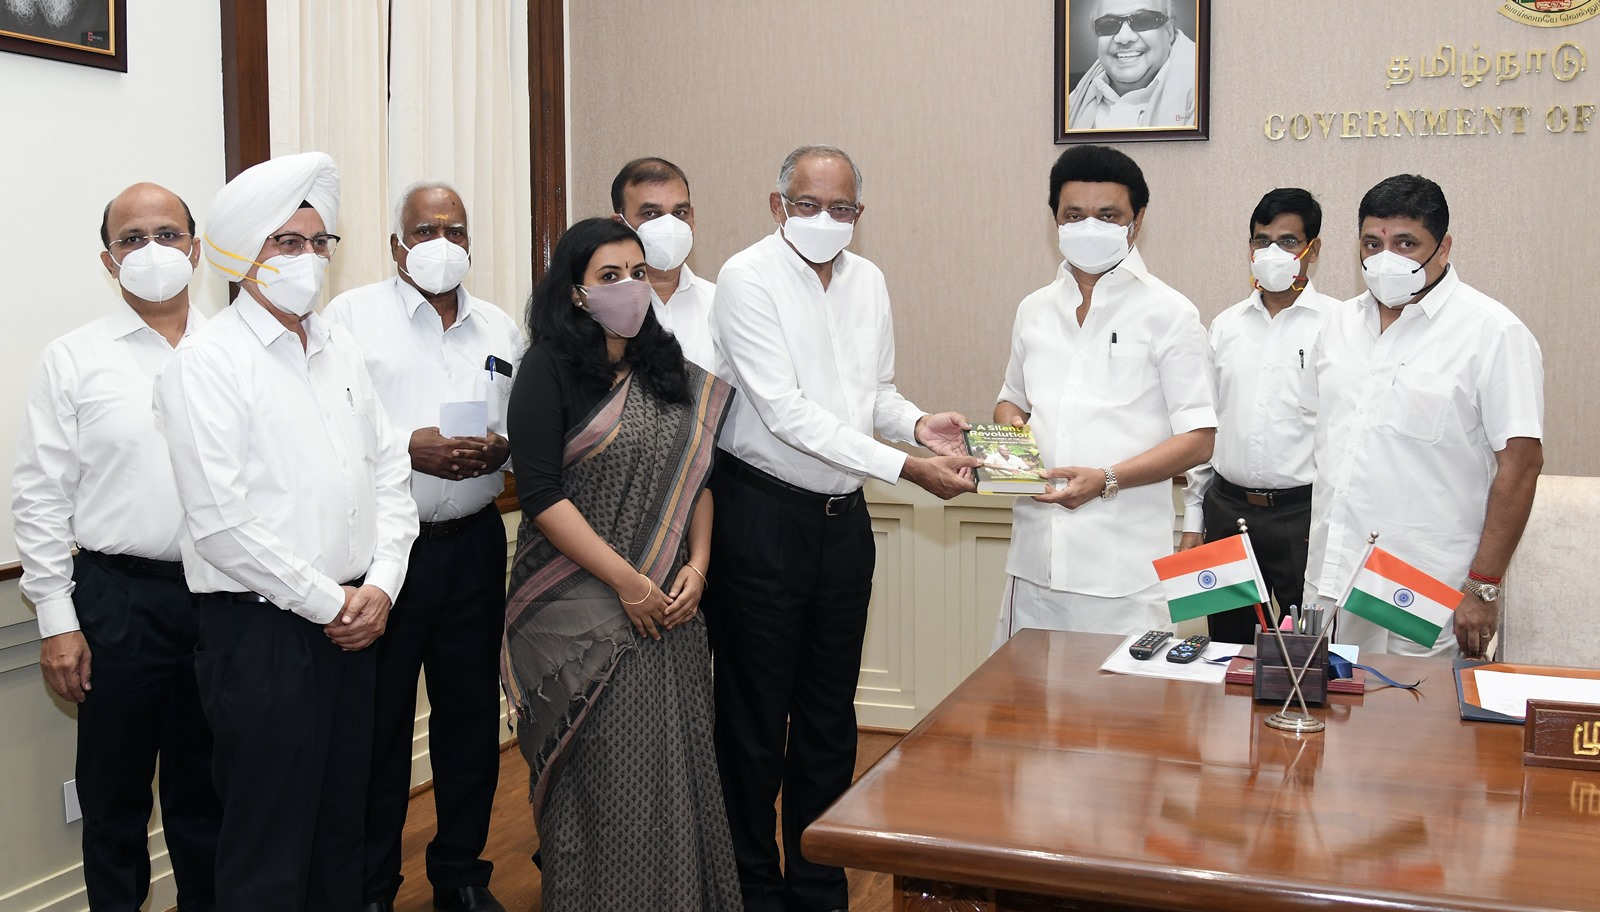 'A Silent Revolution' book launched by TVS; The Journey of the Srinivasan Services Trust with Thiru M.K. Stalin, Hon'ble Chief Minister, Tamil Nadu